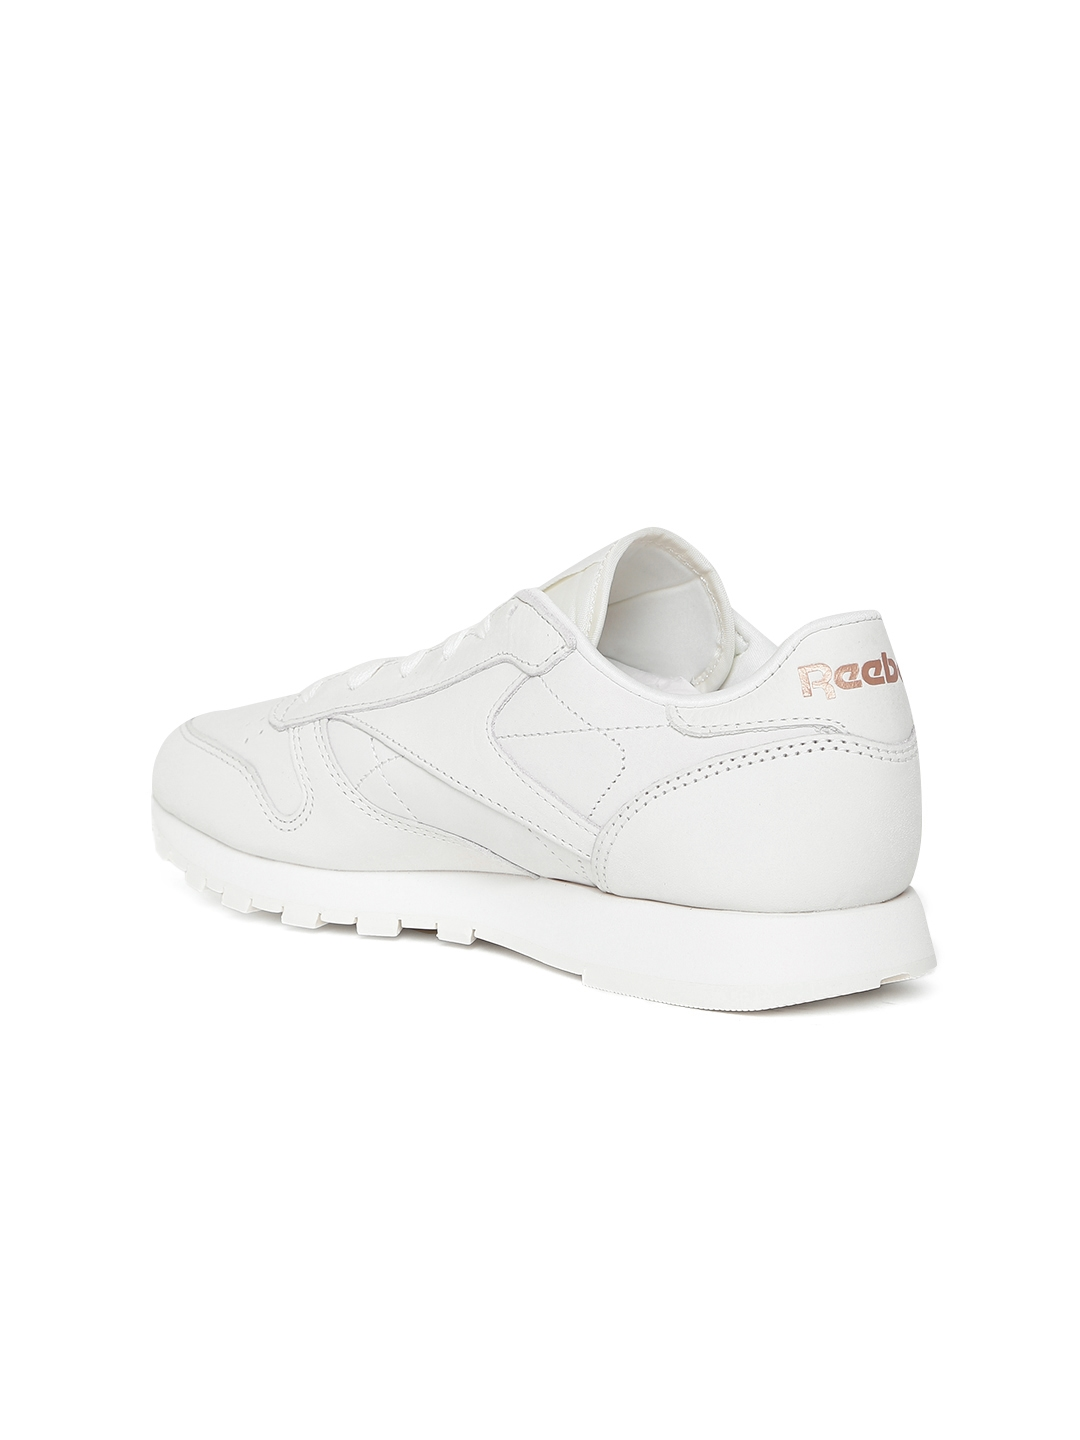 Buy Reebok Classic Women Off White CL Leather FBT Suede Sneakers ... 6bdcb0c60f